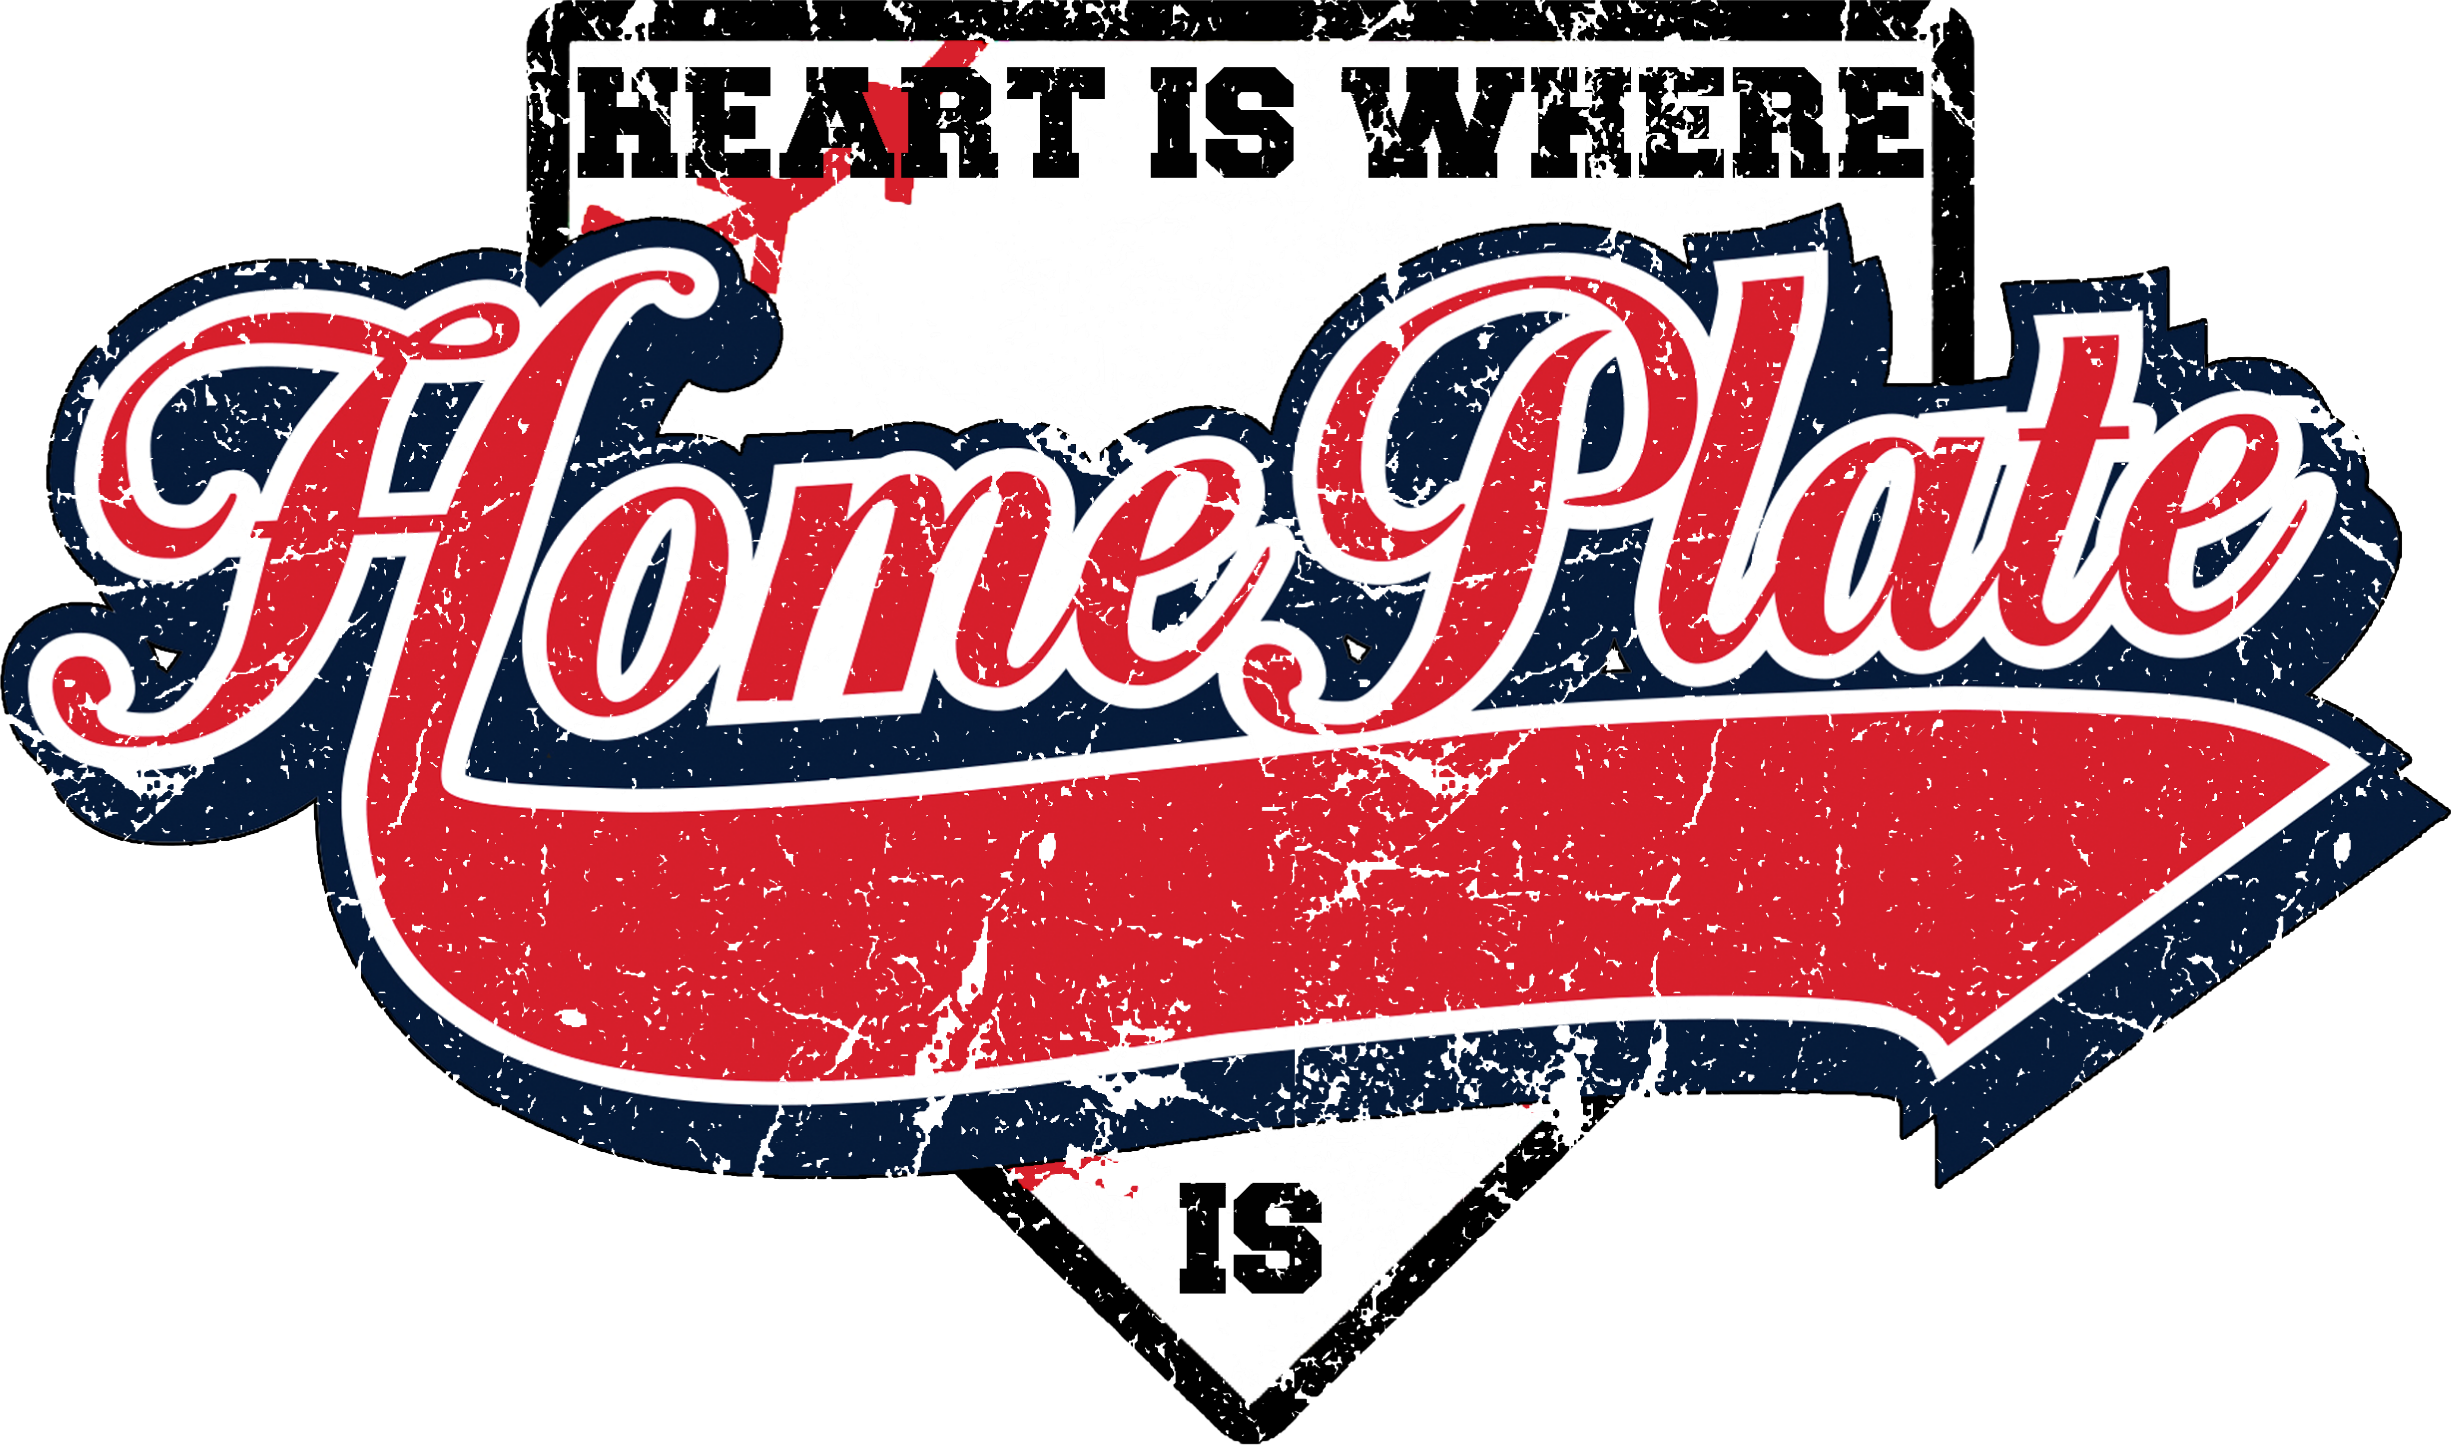 Heart Is Where Home Plate Is